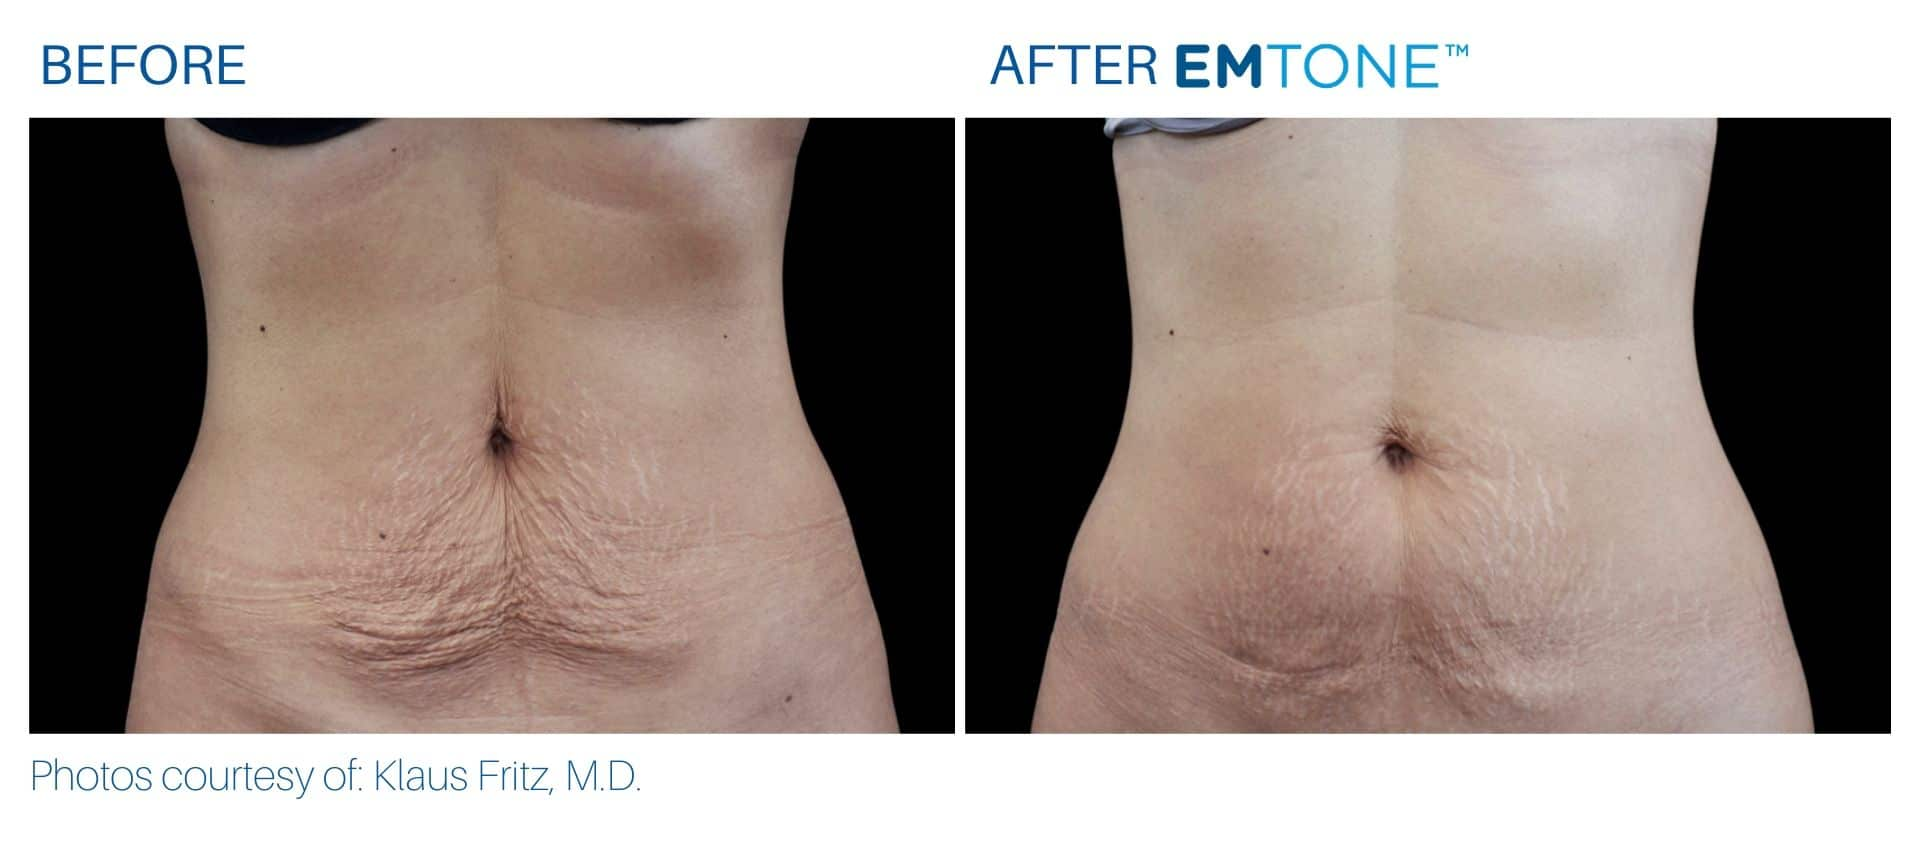 Emtone abdomen before and after result Yonkers, NY